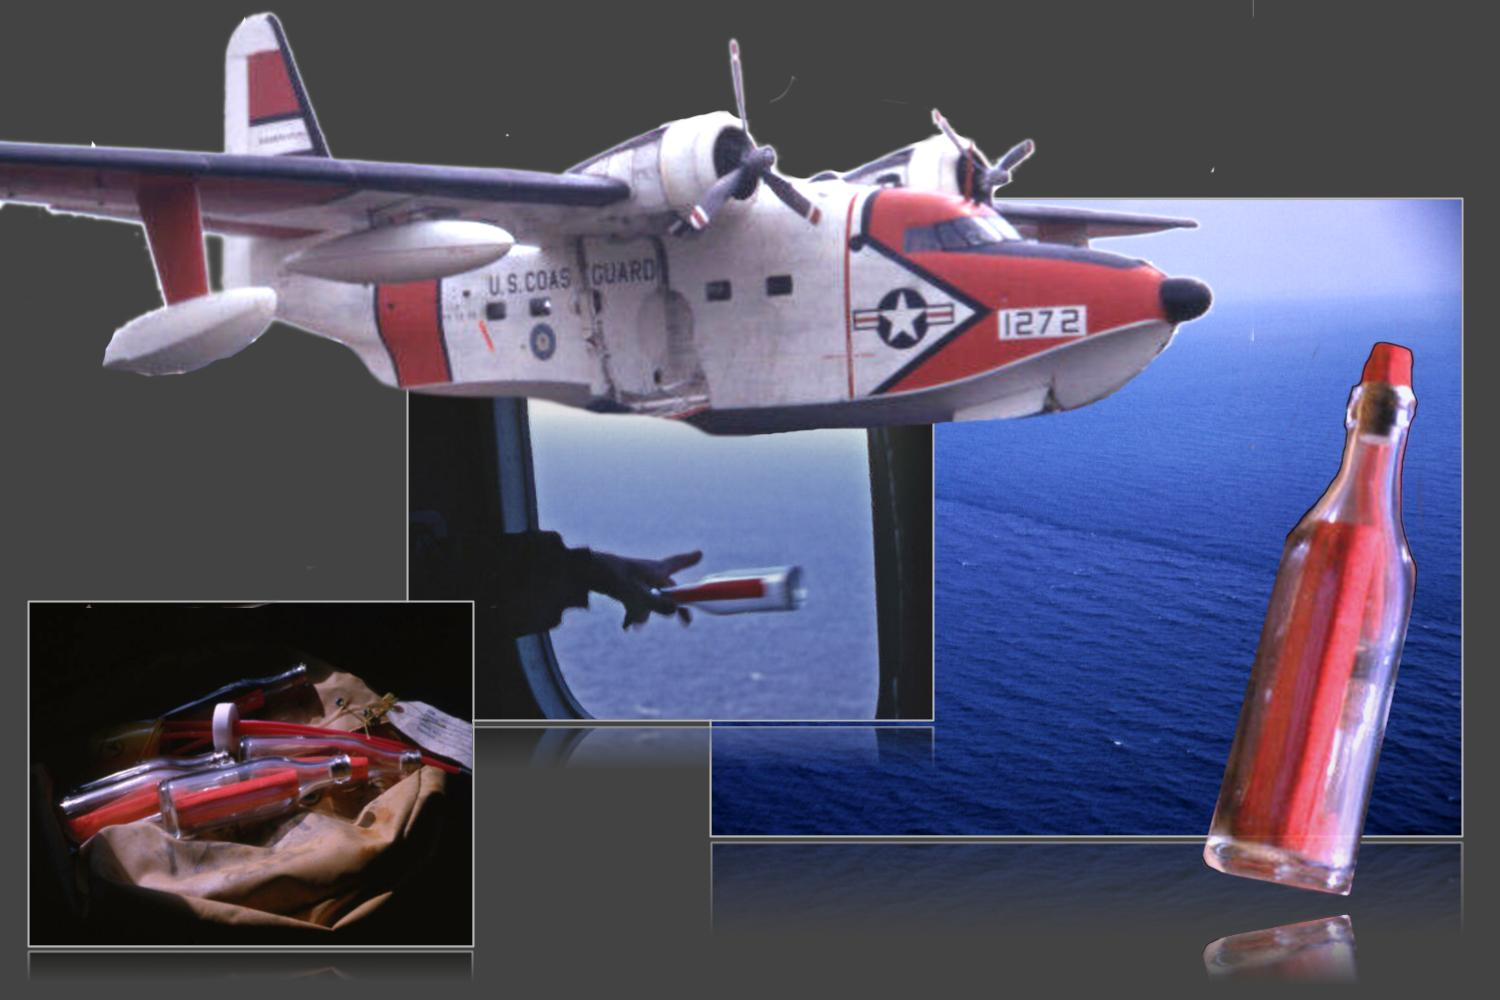 Image is a collage of three panels. The panel on the left shows drifter bottles in a bag.  a researcher aboard an aircraft seated in front of a navigational chart. The center panel shows a person's hand throwing a drifter bottle out of the window of a plane. A Coast Guard propeller engined aircraft hovers at the top of the collage. The third panel shows a view of an ocean current front taken from an aircraft.